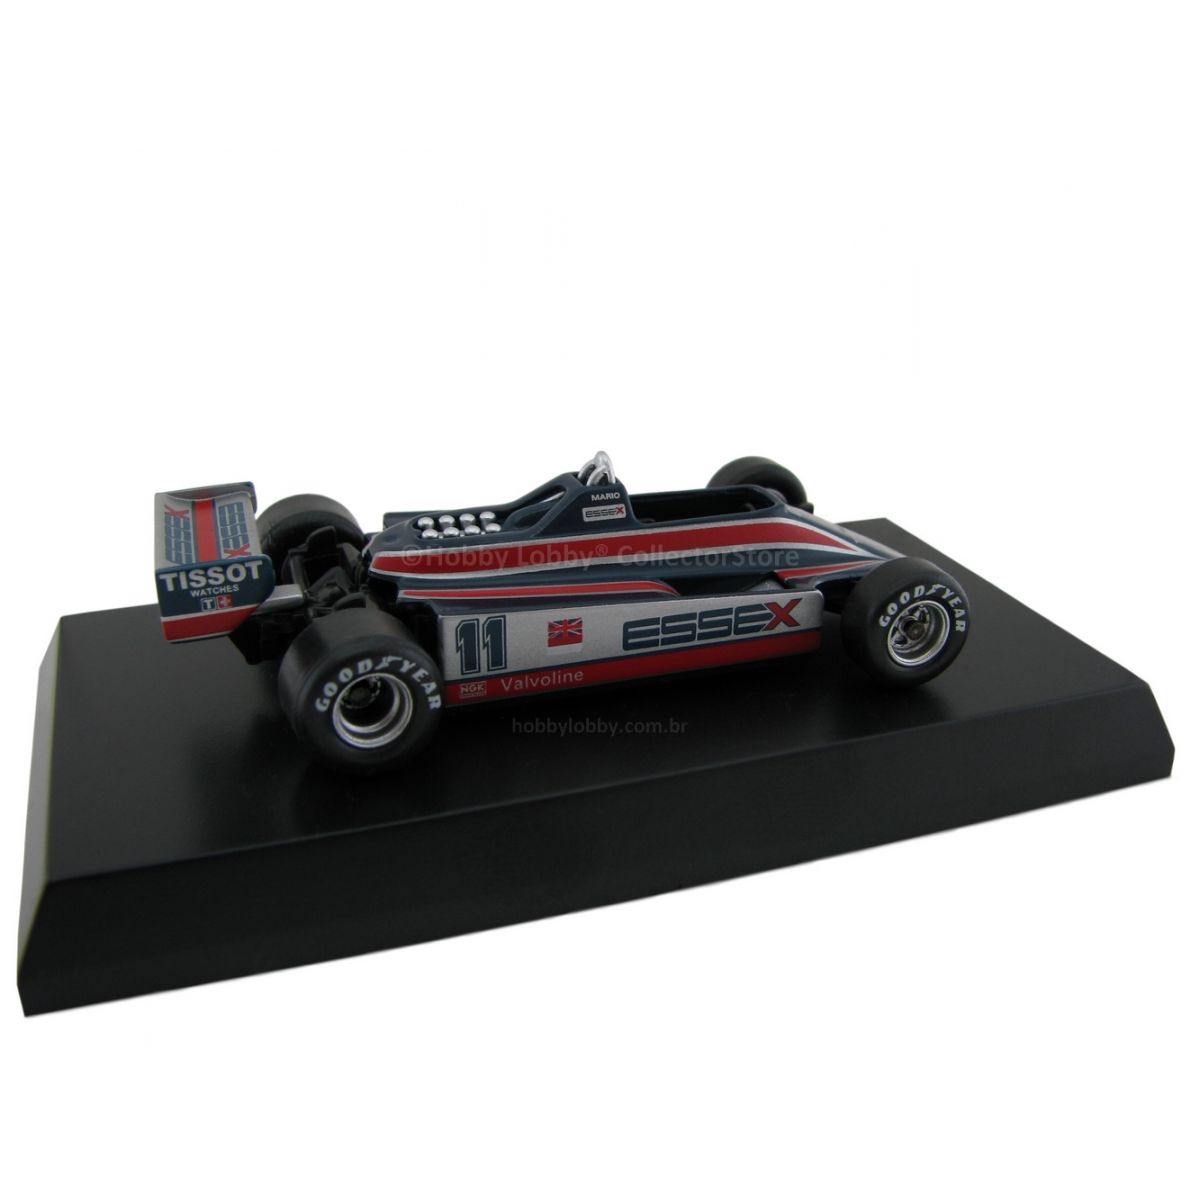 Kyosho - Classic Team Lotus - Lotus 81  - Hobby Lobby CollectorStore